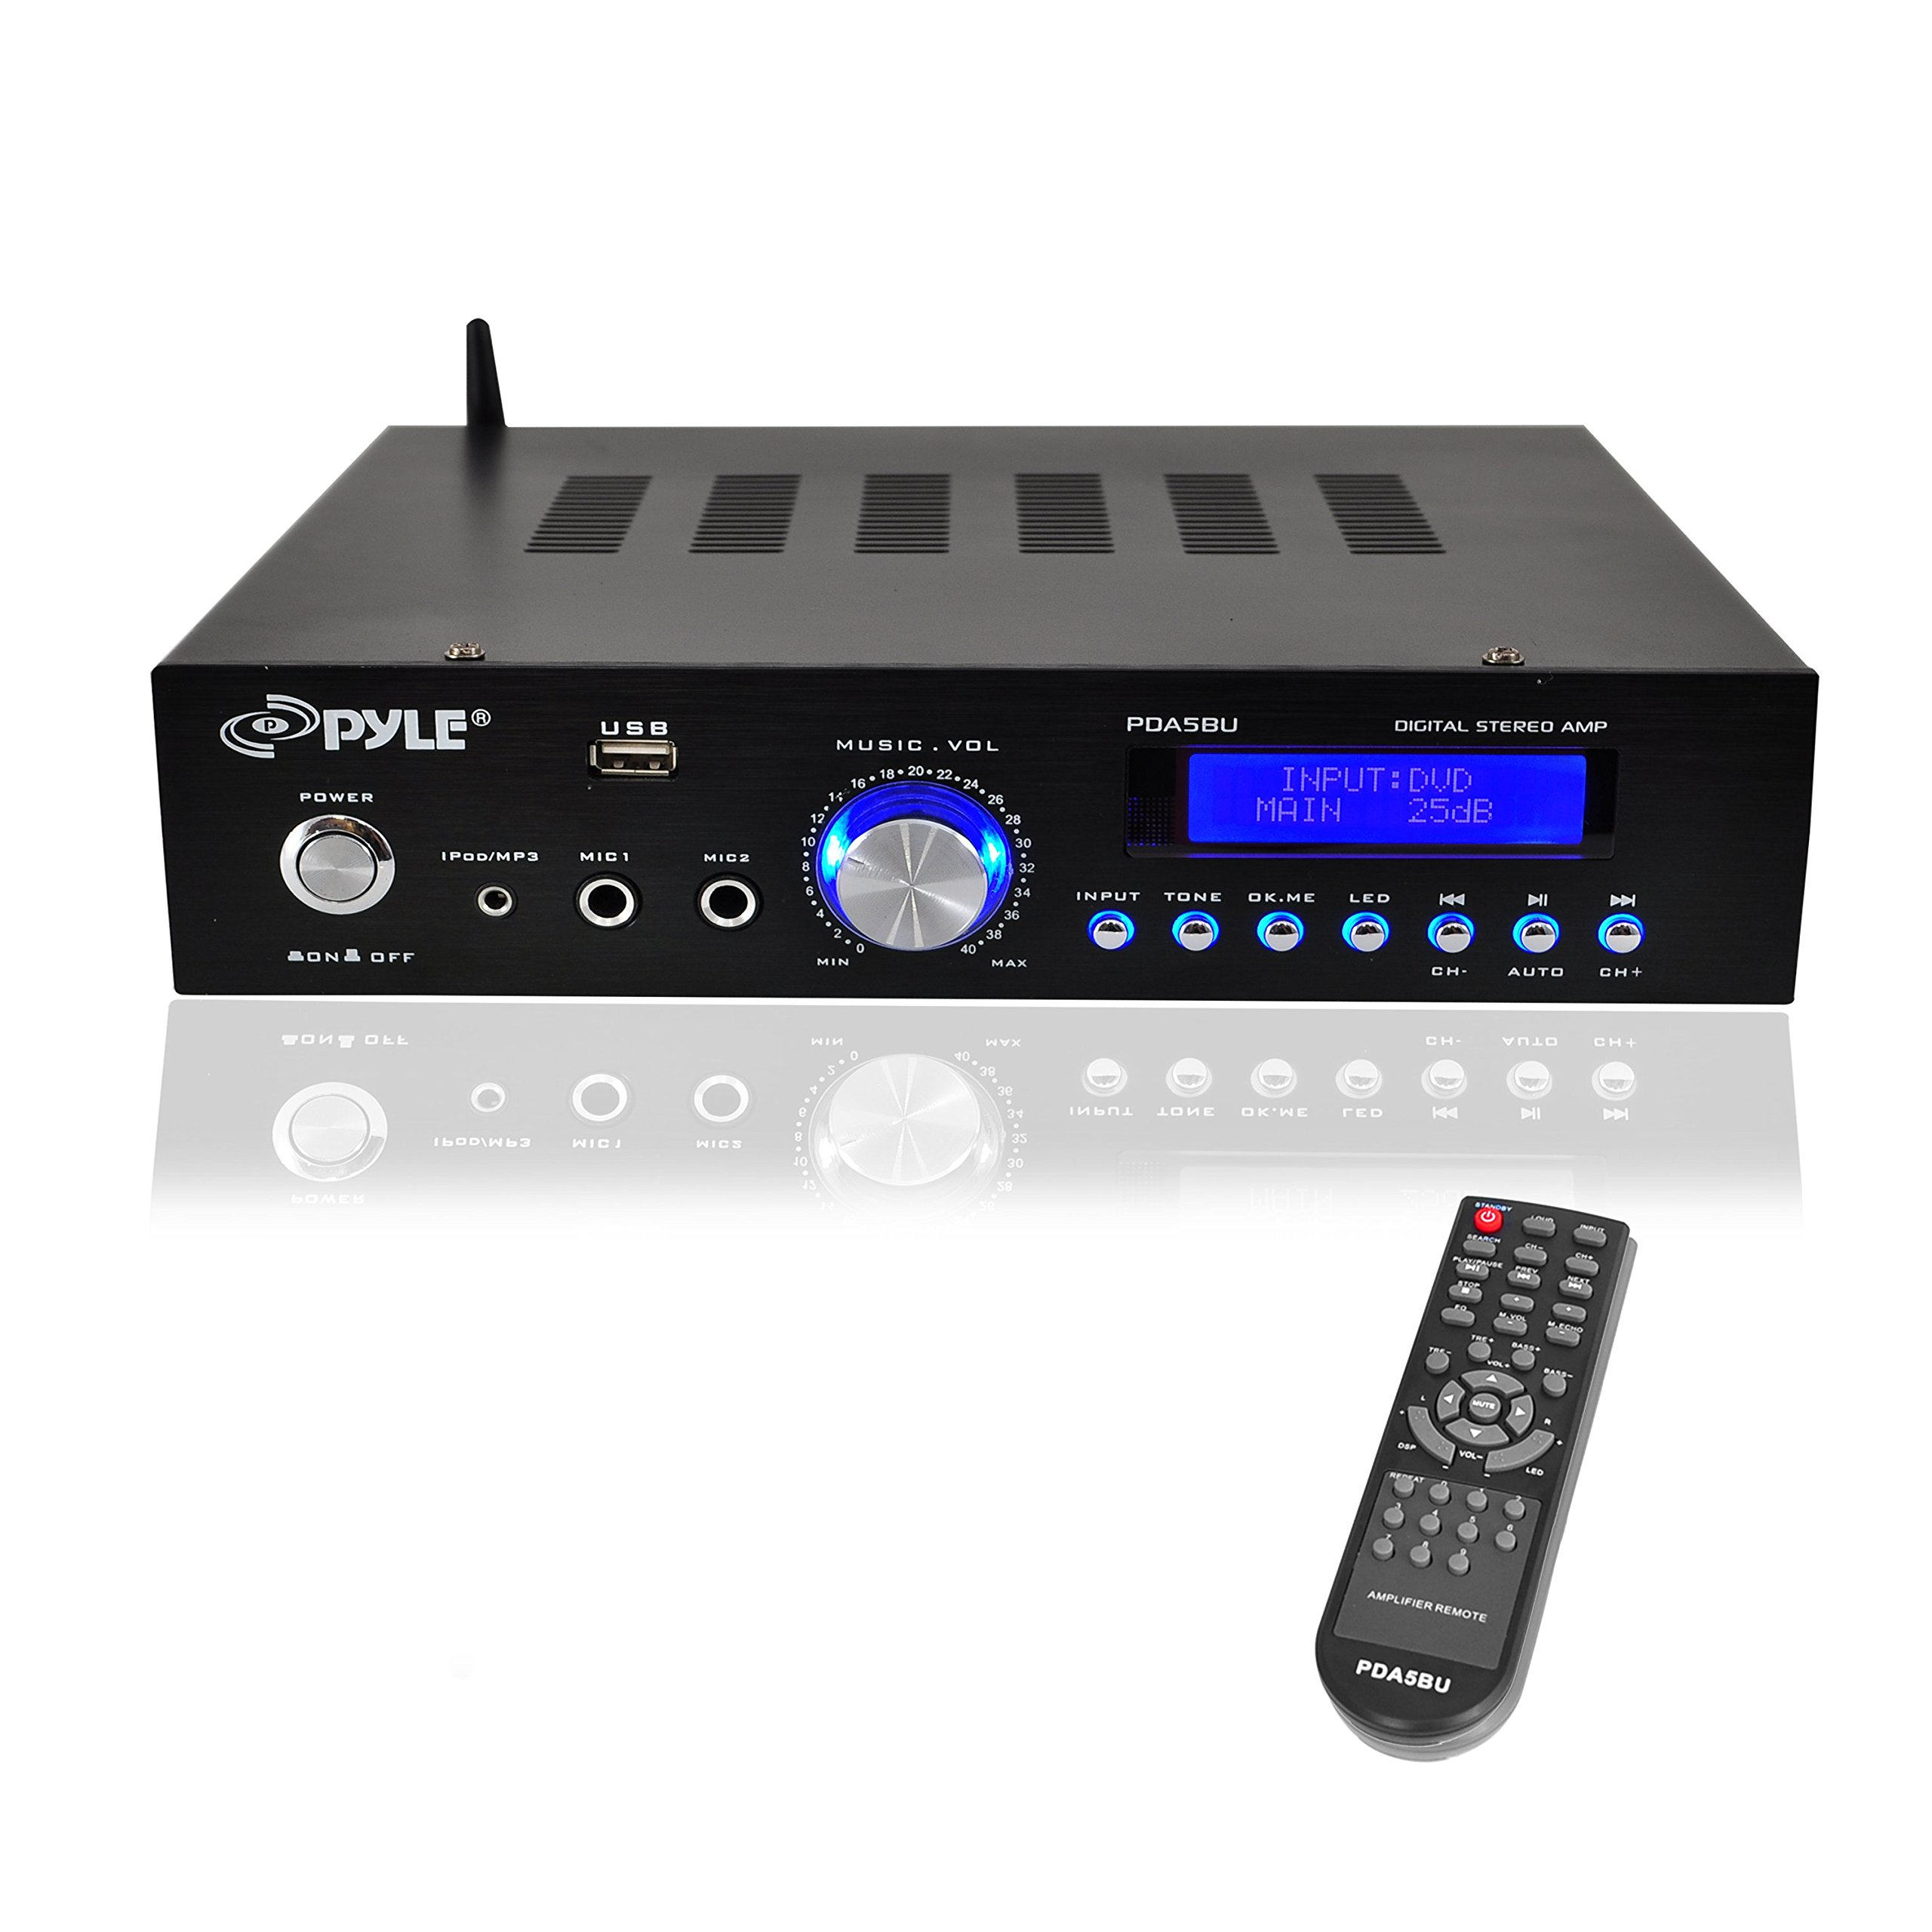 Premium Bluetooth Stereo Amplifier, 200 Watt Compact Amp Receiver with Remote Control, FM Antenna and USB/AUX Port by Pyle (Image #1)